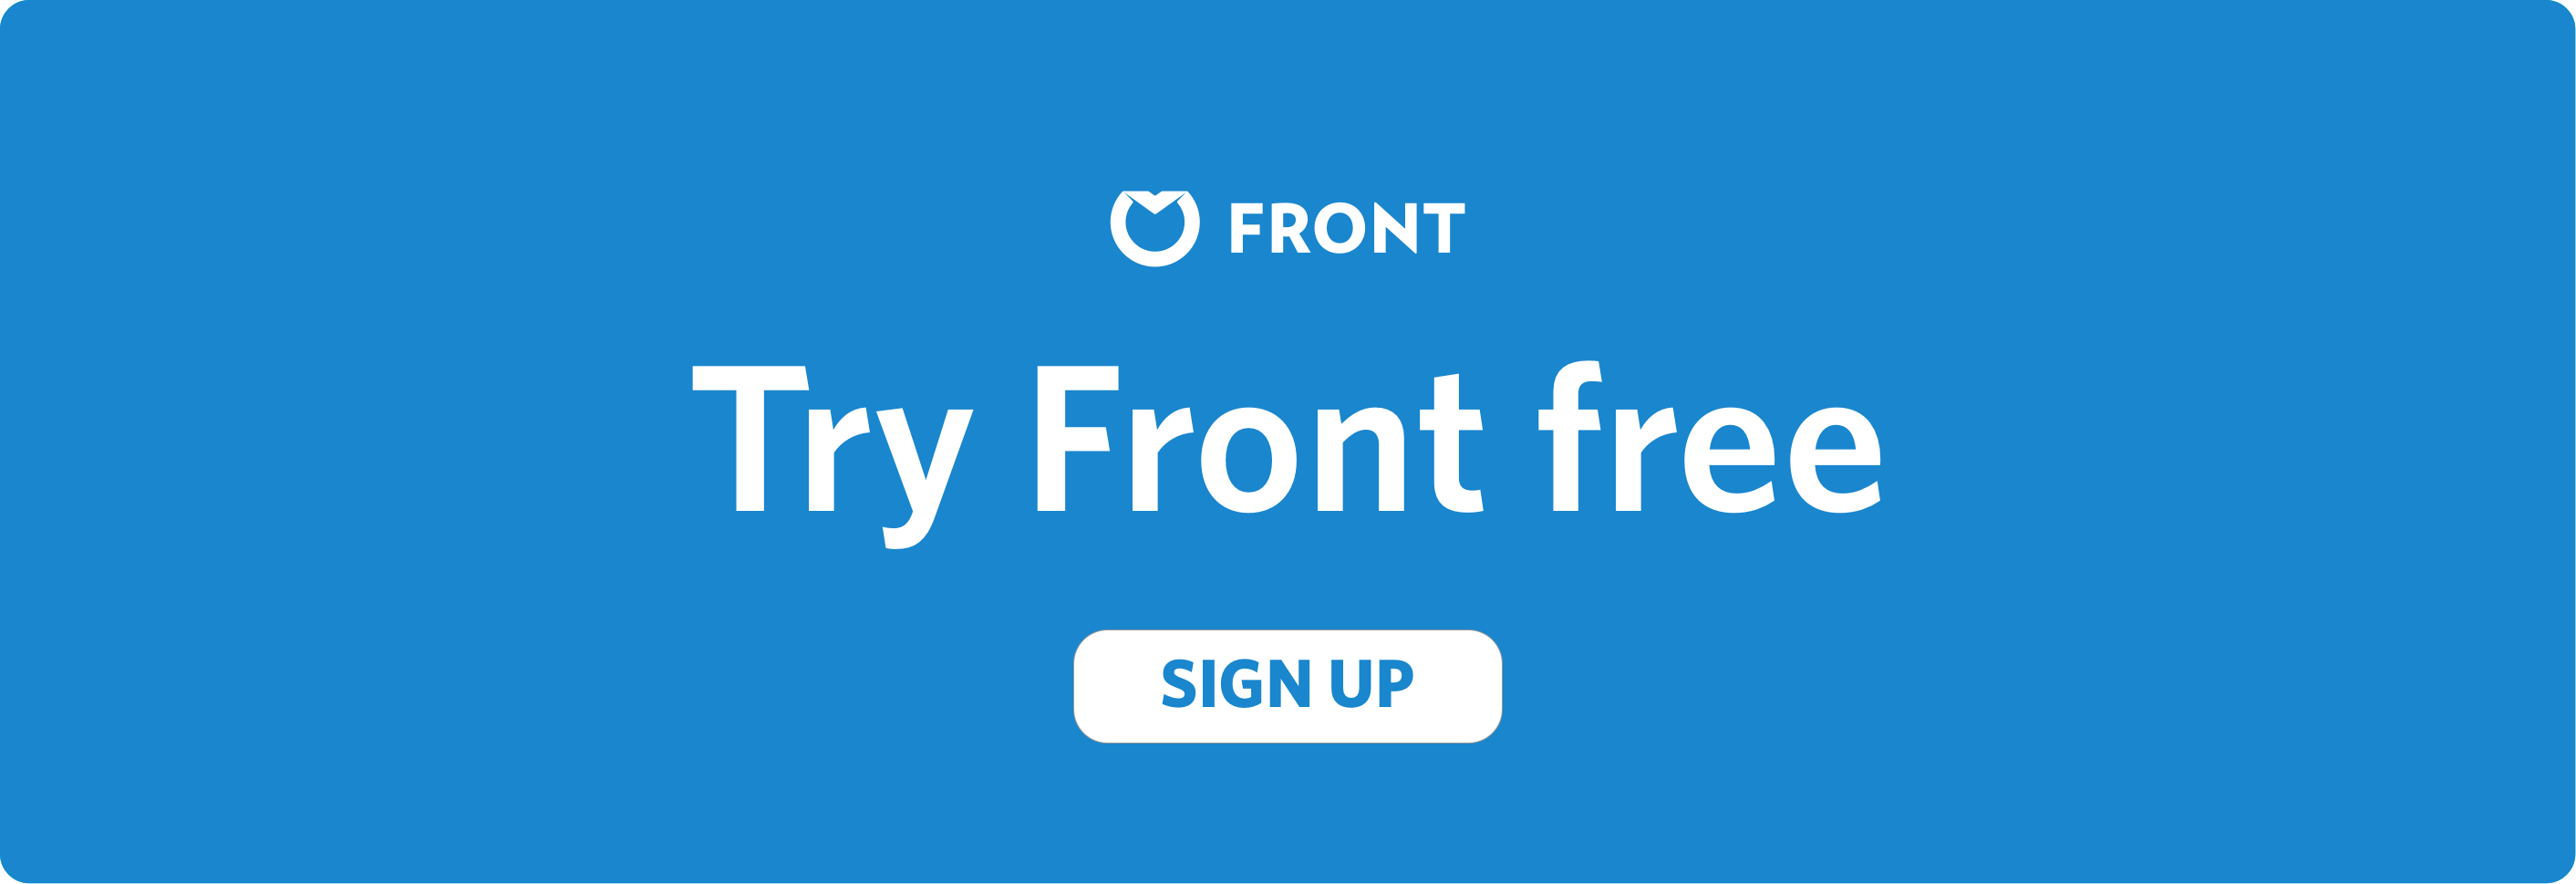 Sign up for Front